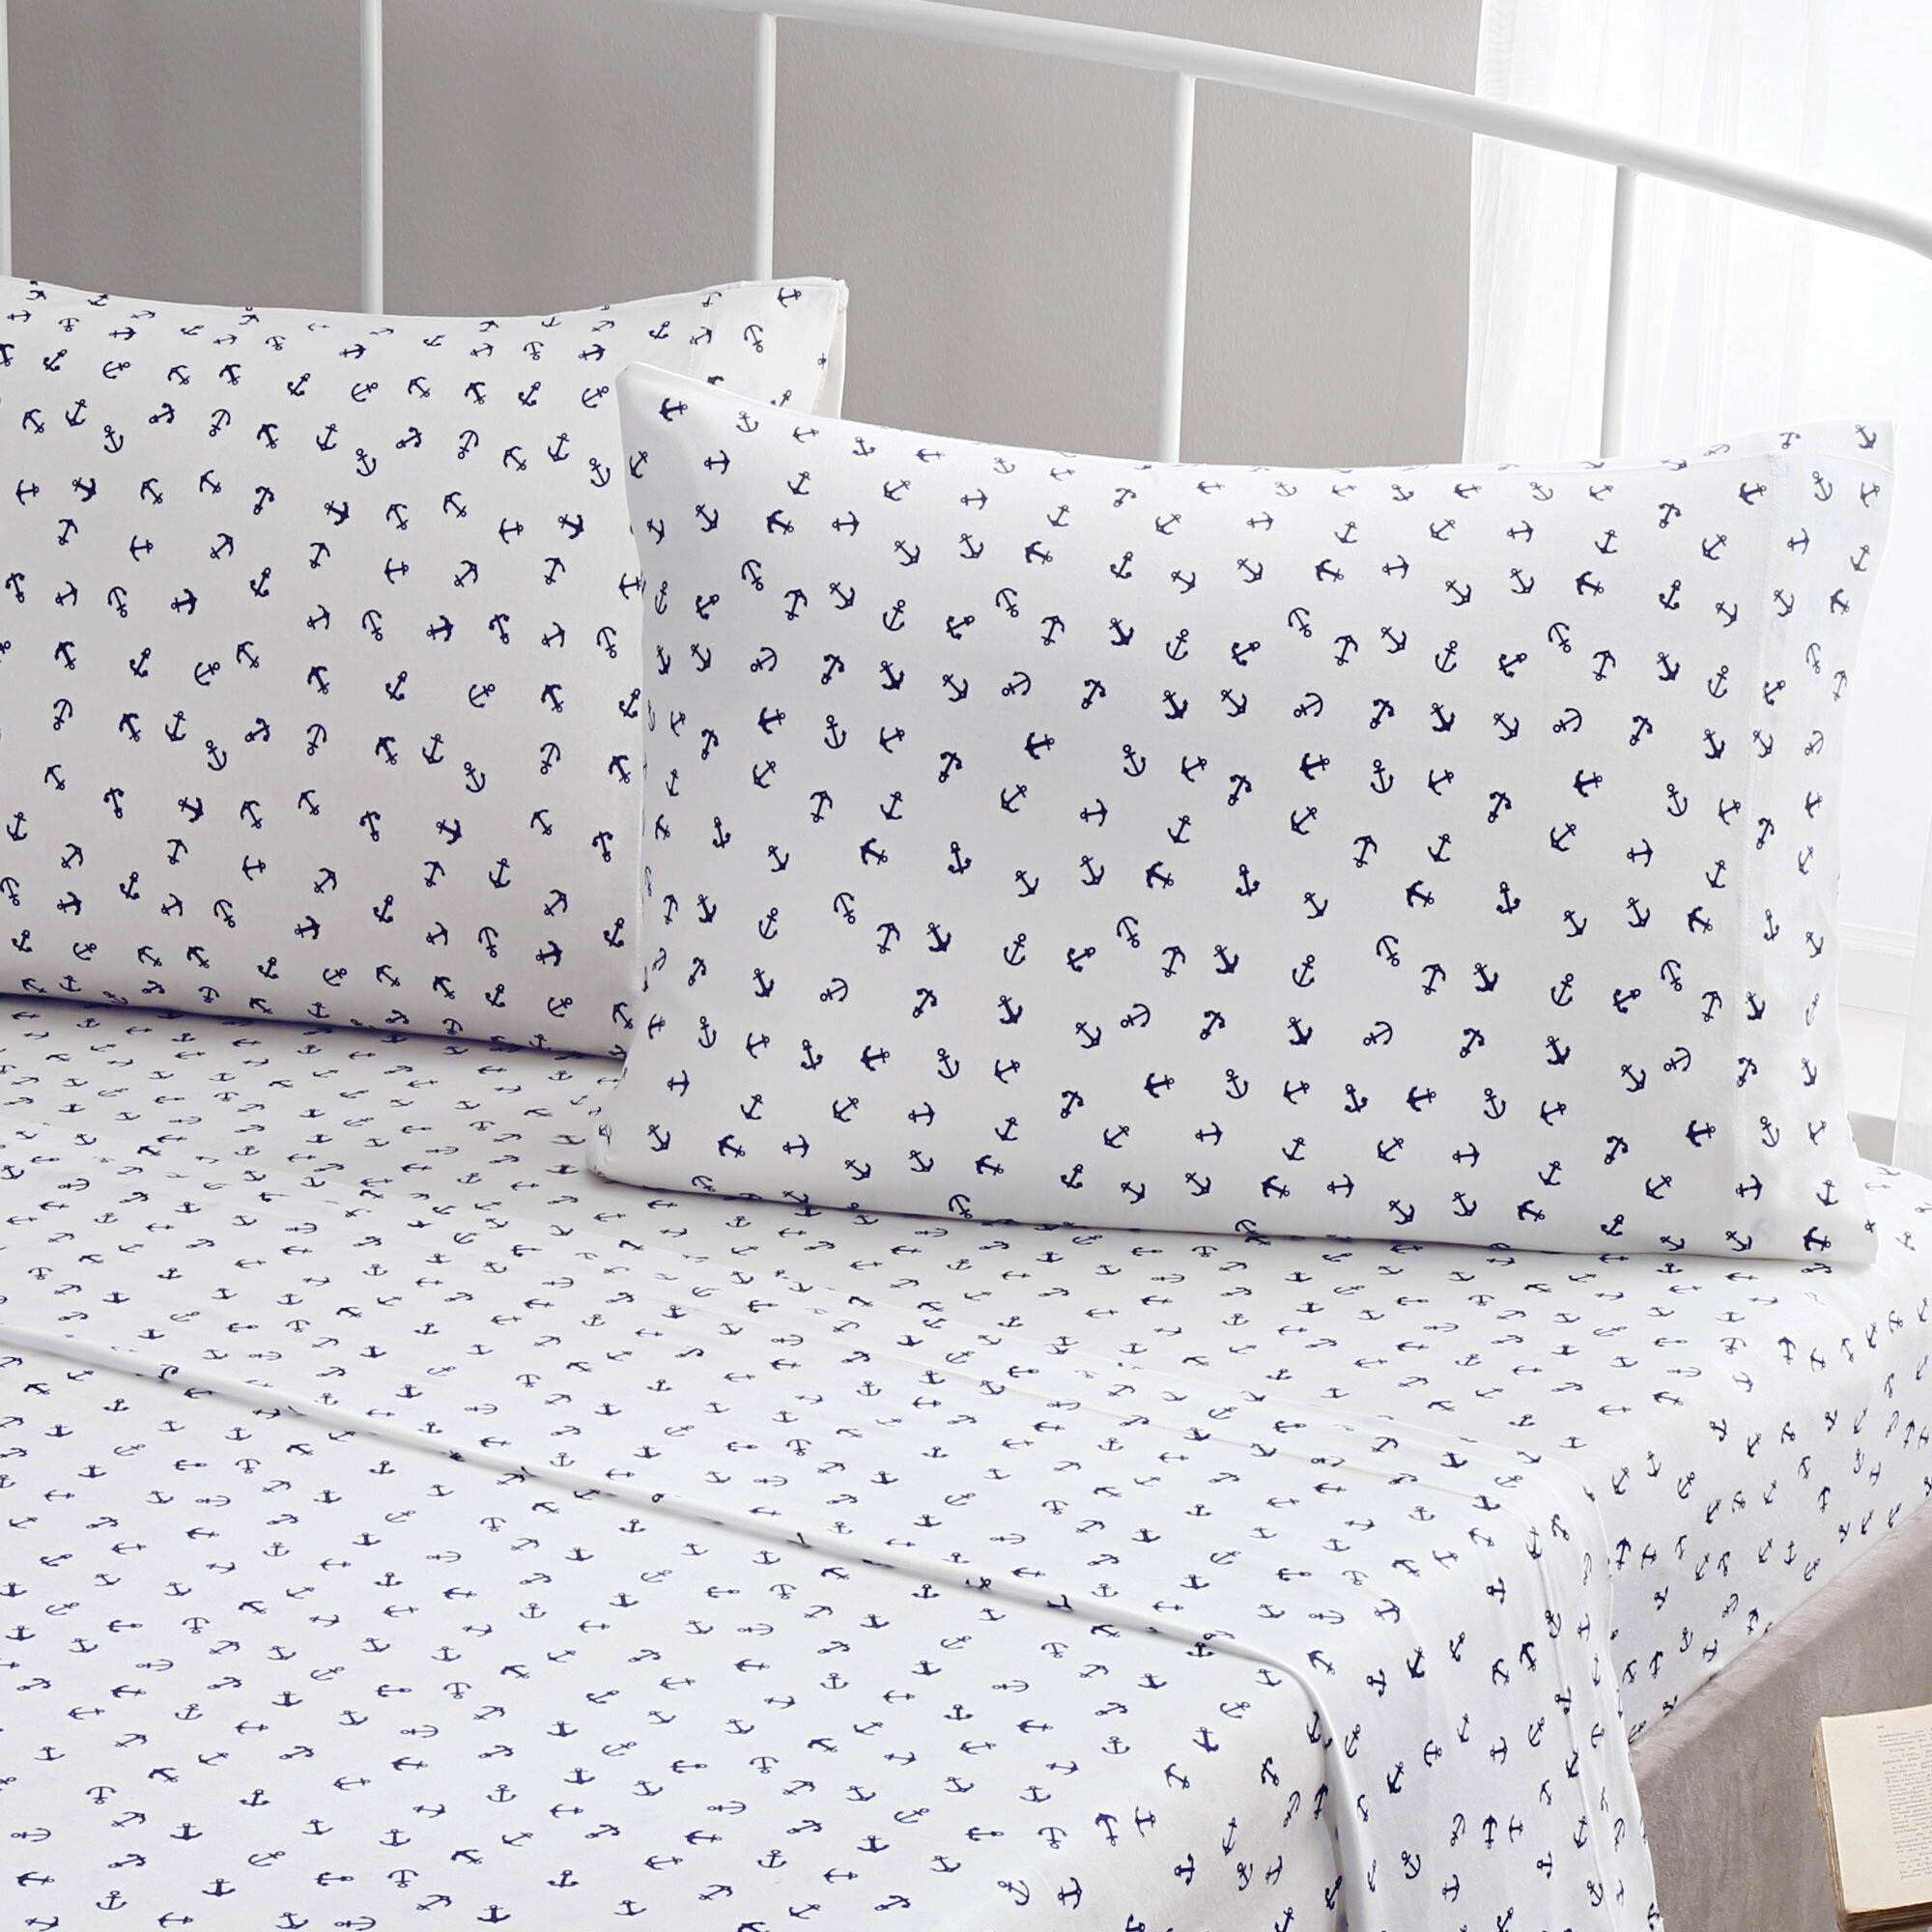 Delicieux Brielle Anchor 100% Printed Cotton Jersey Sheet Set U0026 Reviews | Wayfair